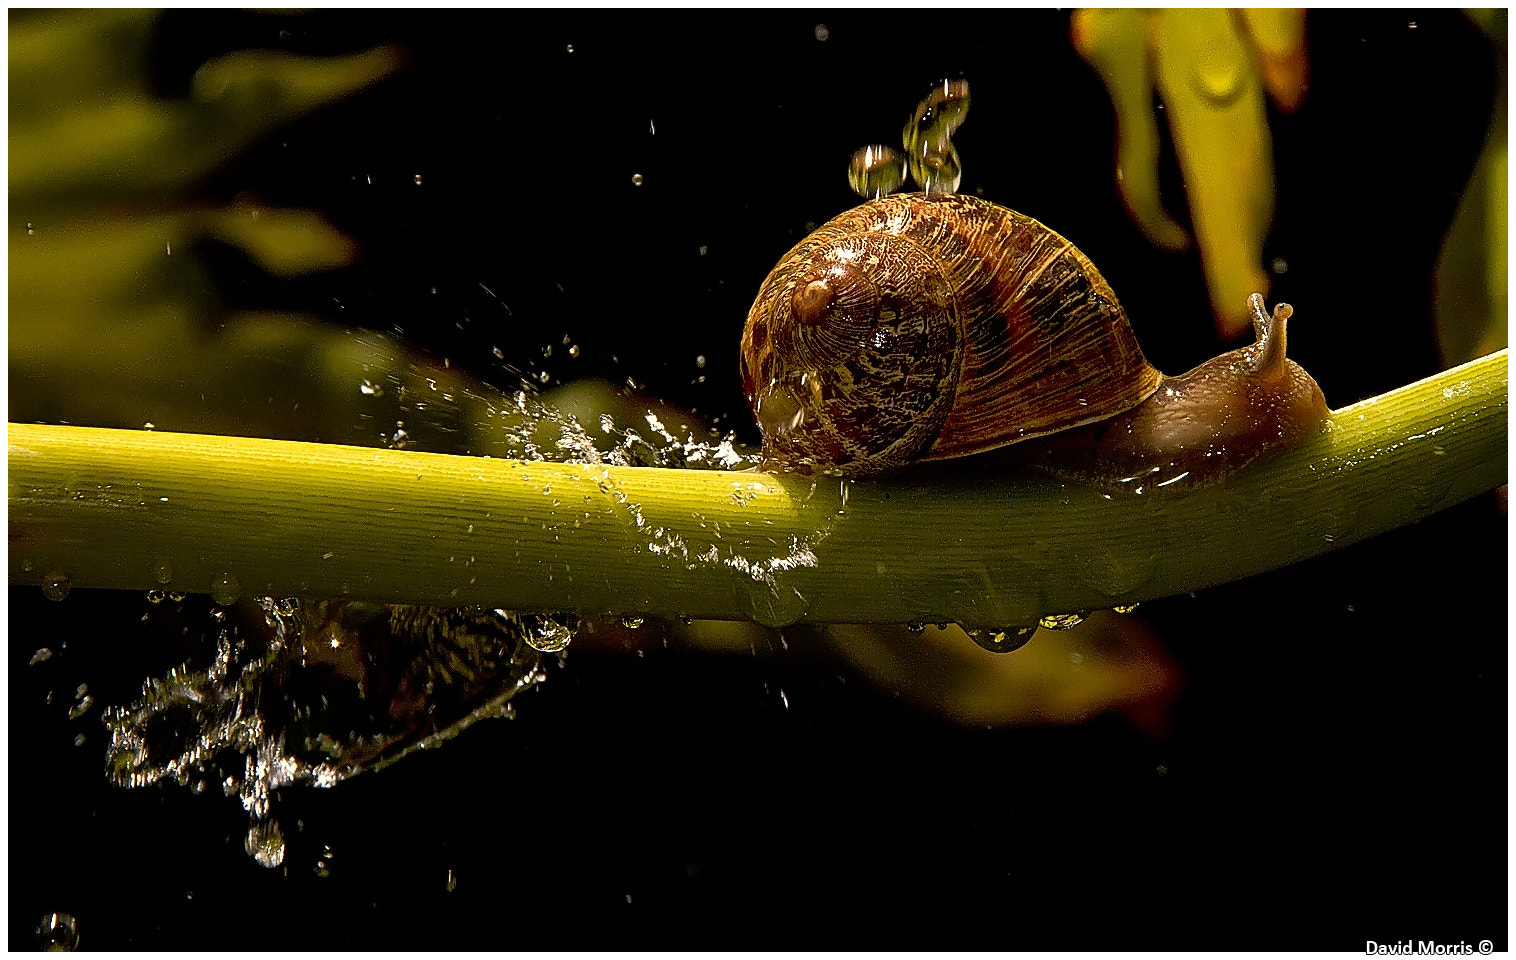 Photograph Dodging the drops by Dave Morris on 500px